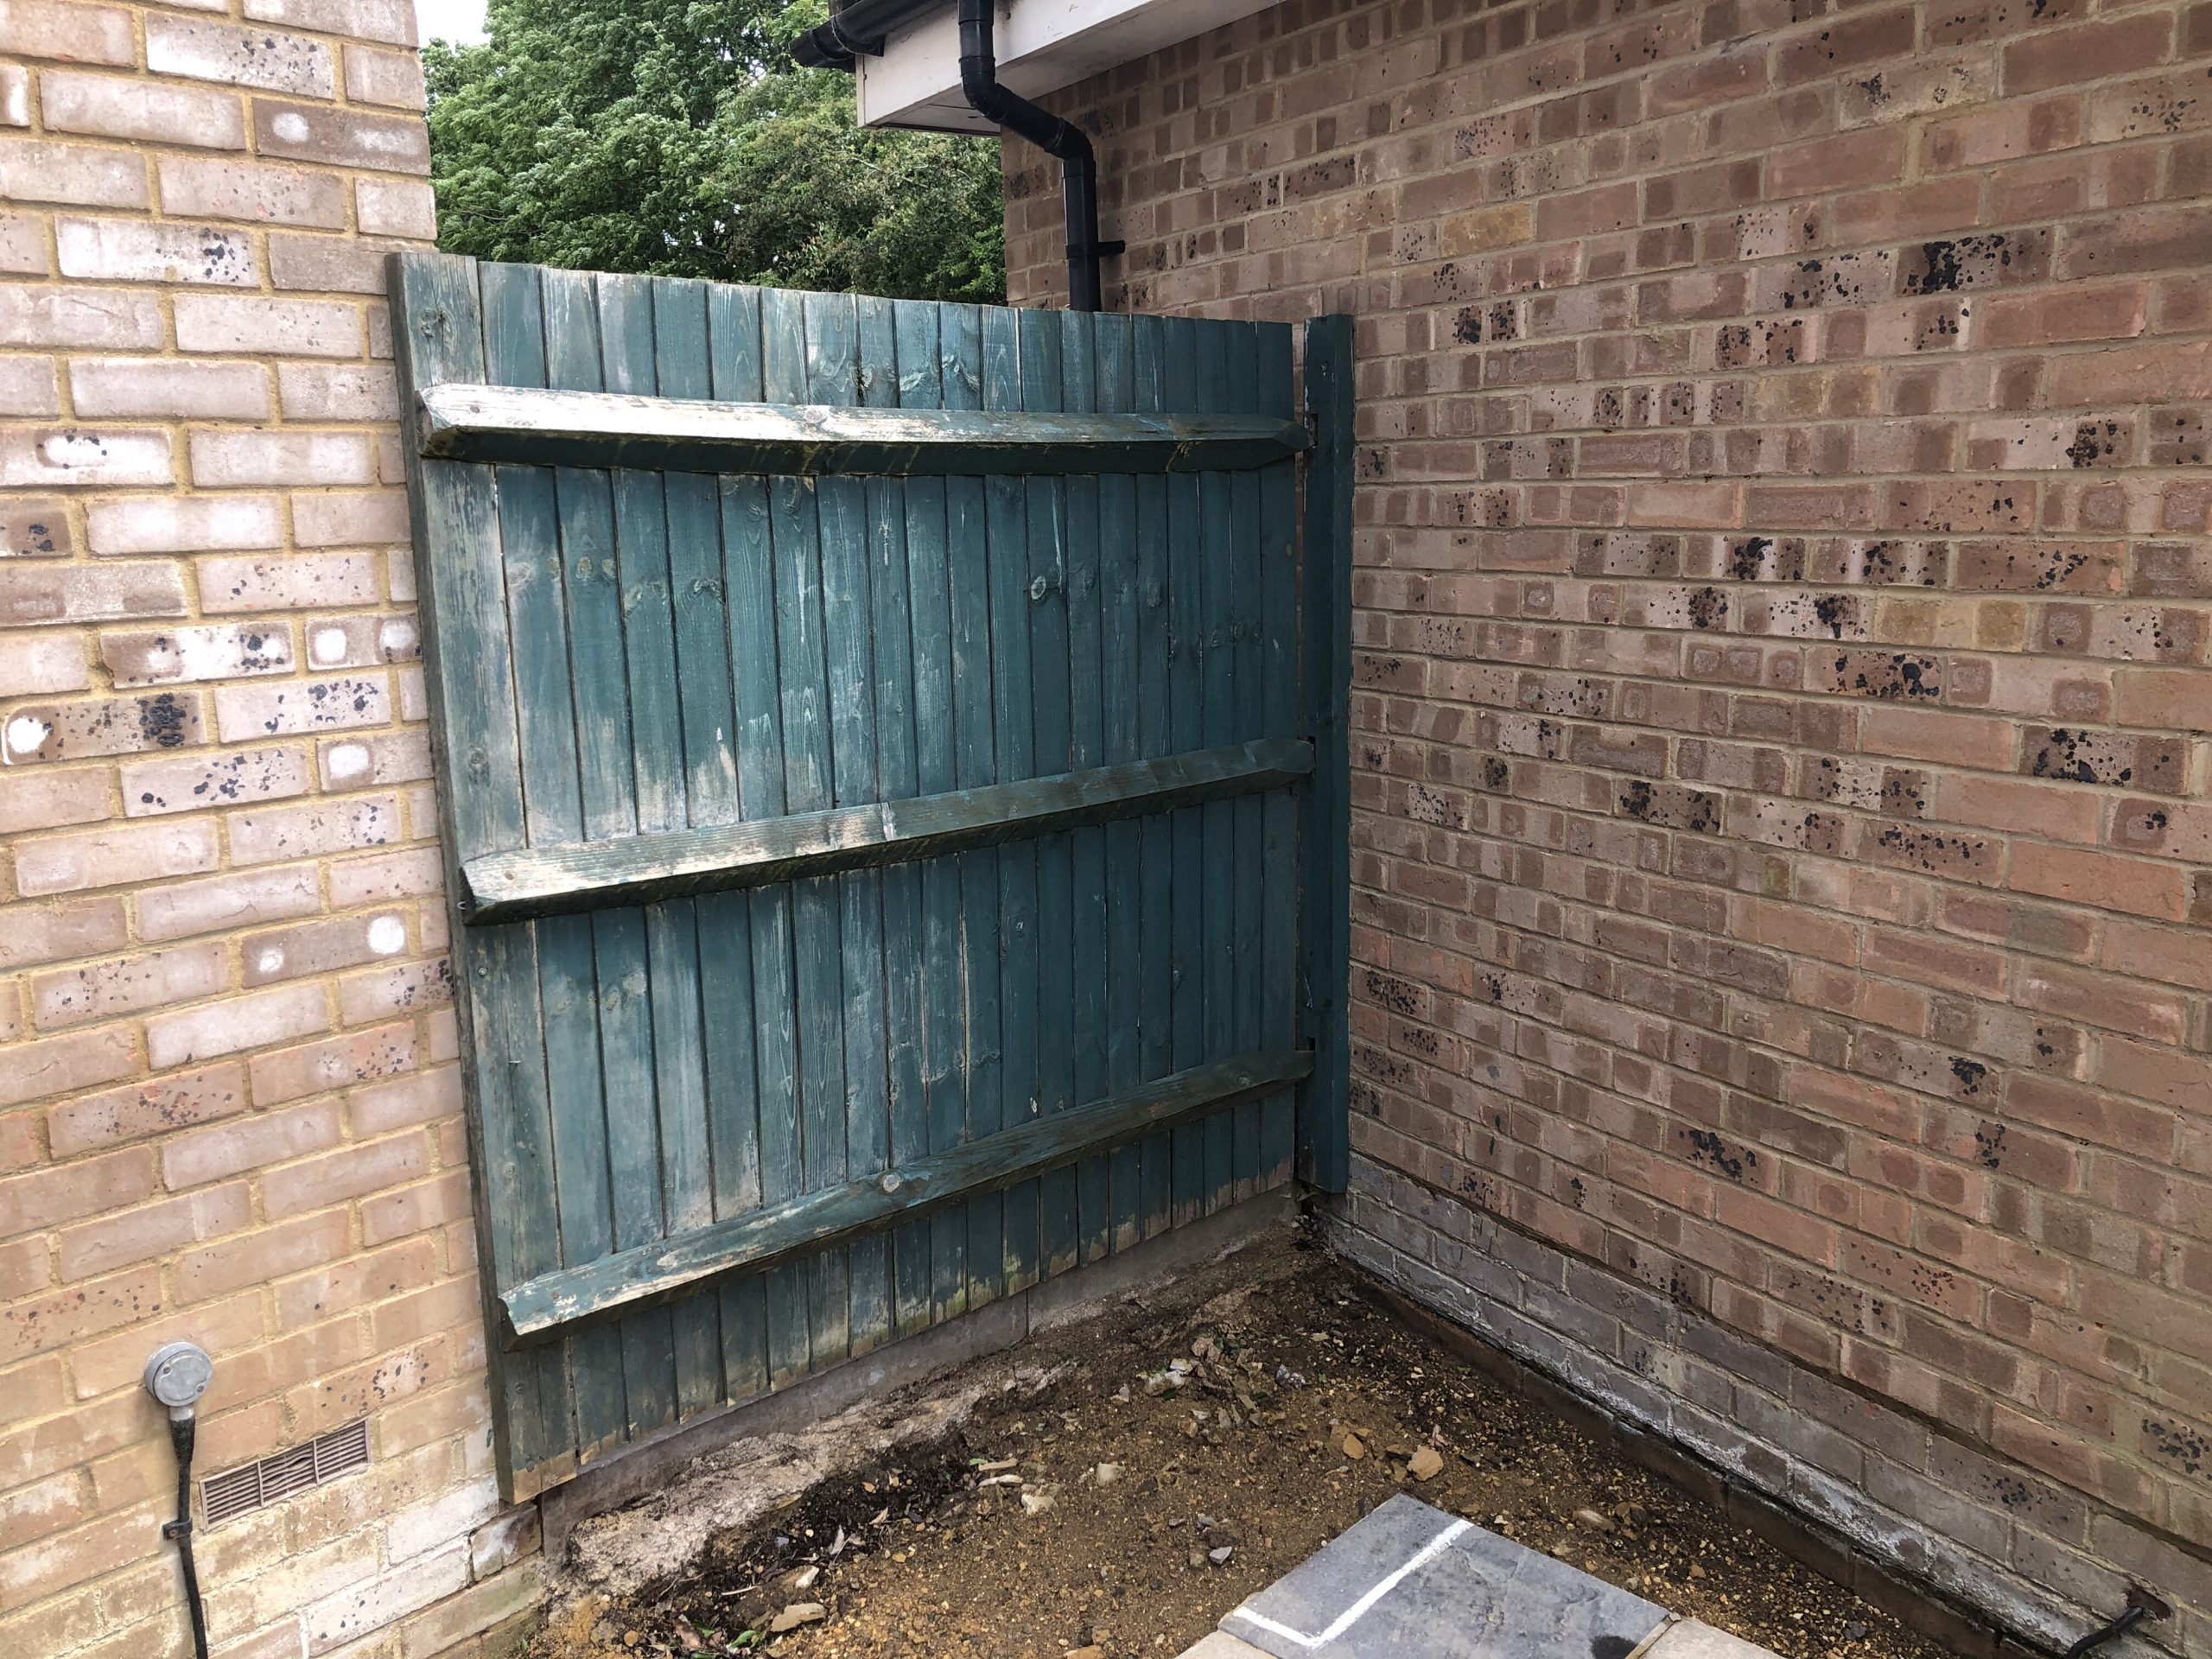 The old small fence